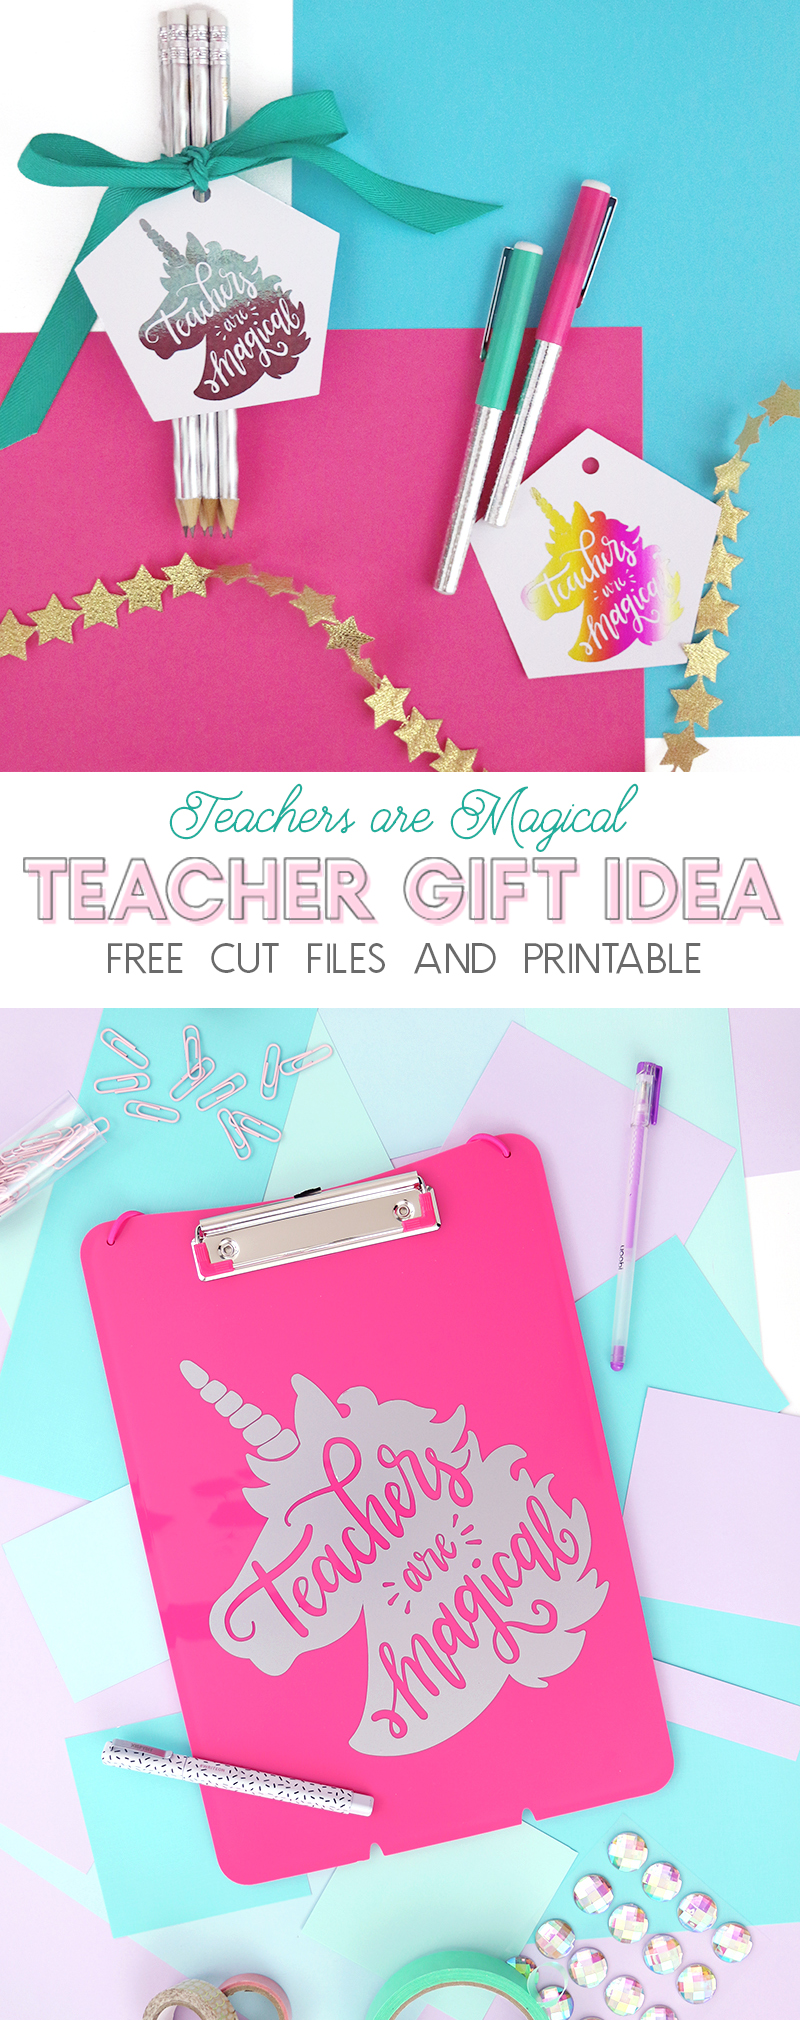 unicorn teacher appreciation gift idea - teachers are magical - free cut files and printables